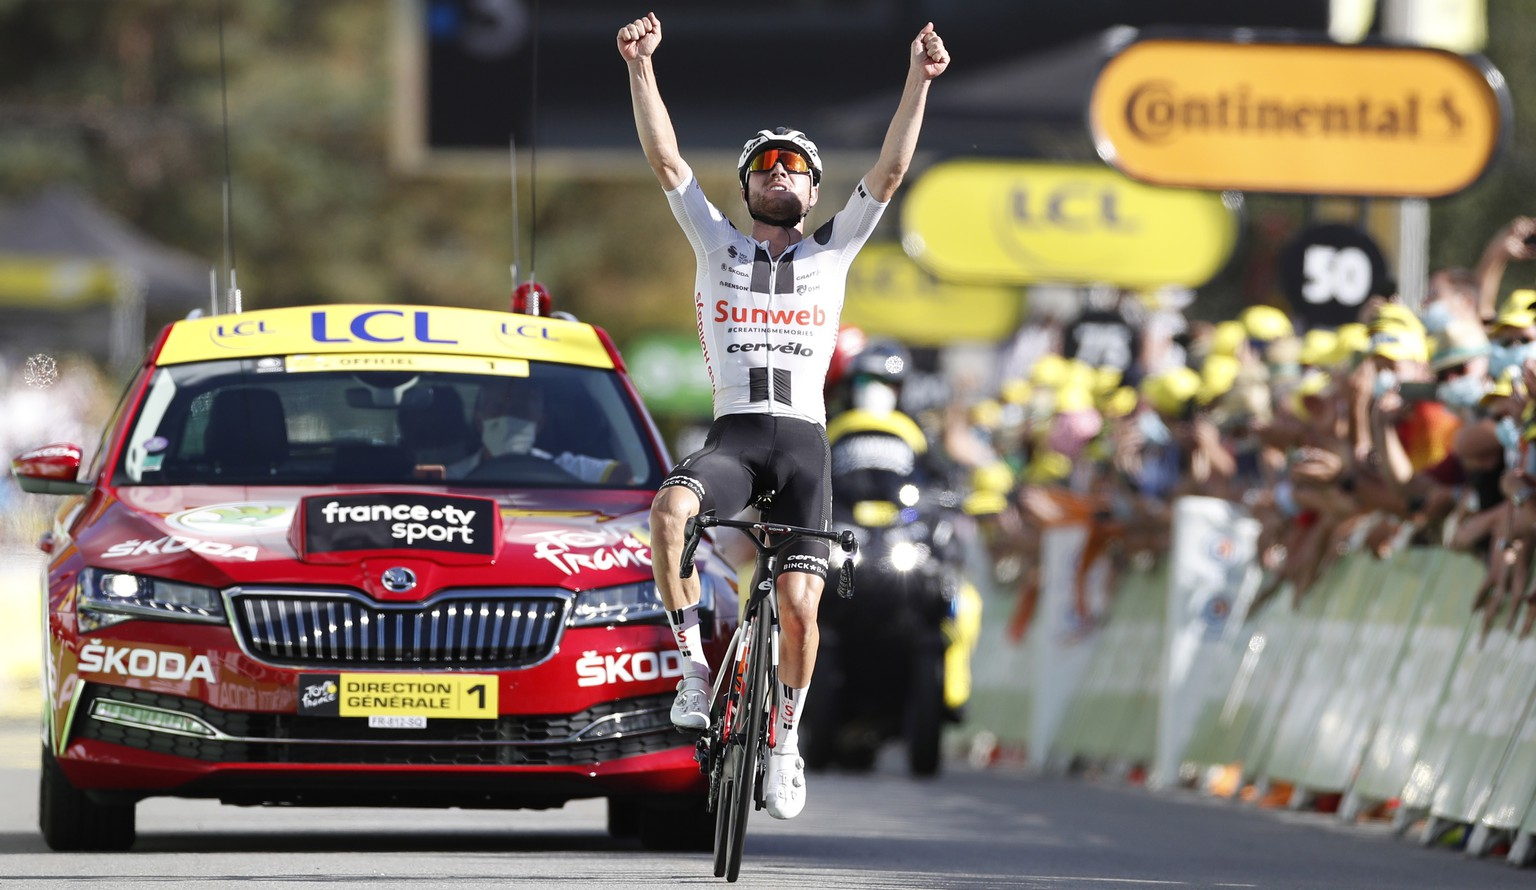 epa08659205 Swiss rider Marc Hirschi of Team Sunweb wins the 12th stage of the Tour de France cycling race over 218km from Chauvigny to Sarran, France, 10 September 2020.  EPA/Sebastien Nogier / POOL